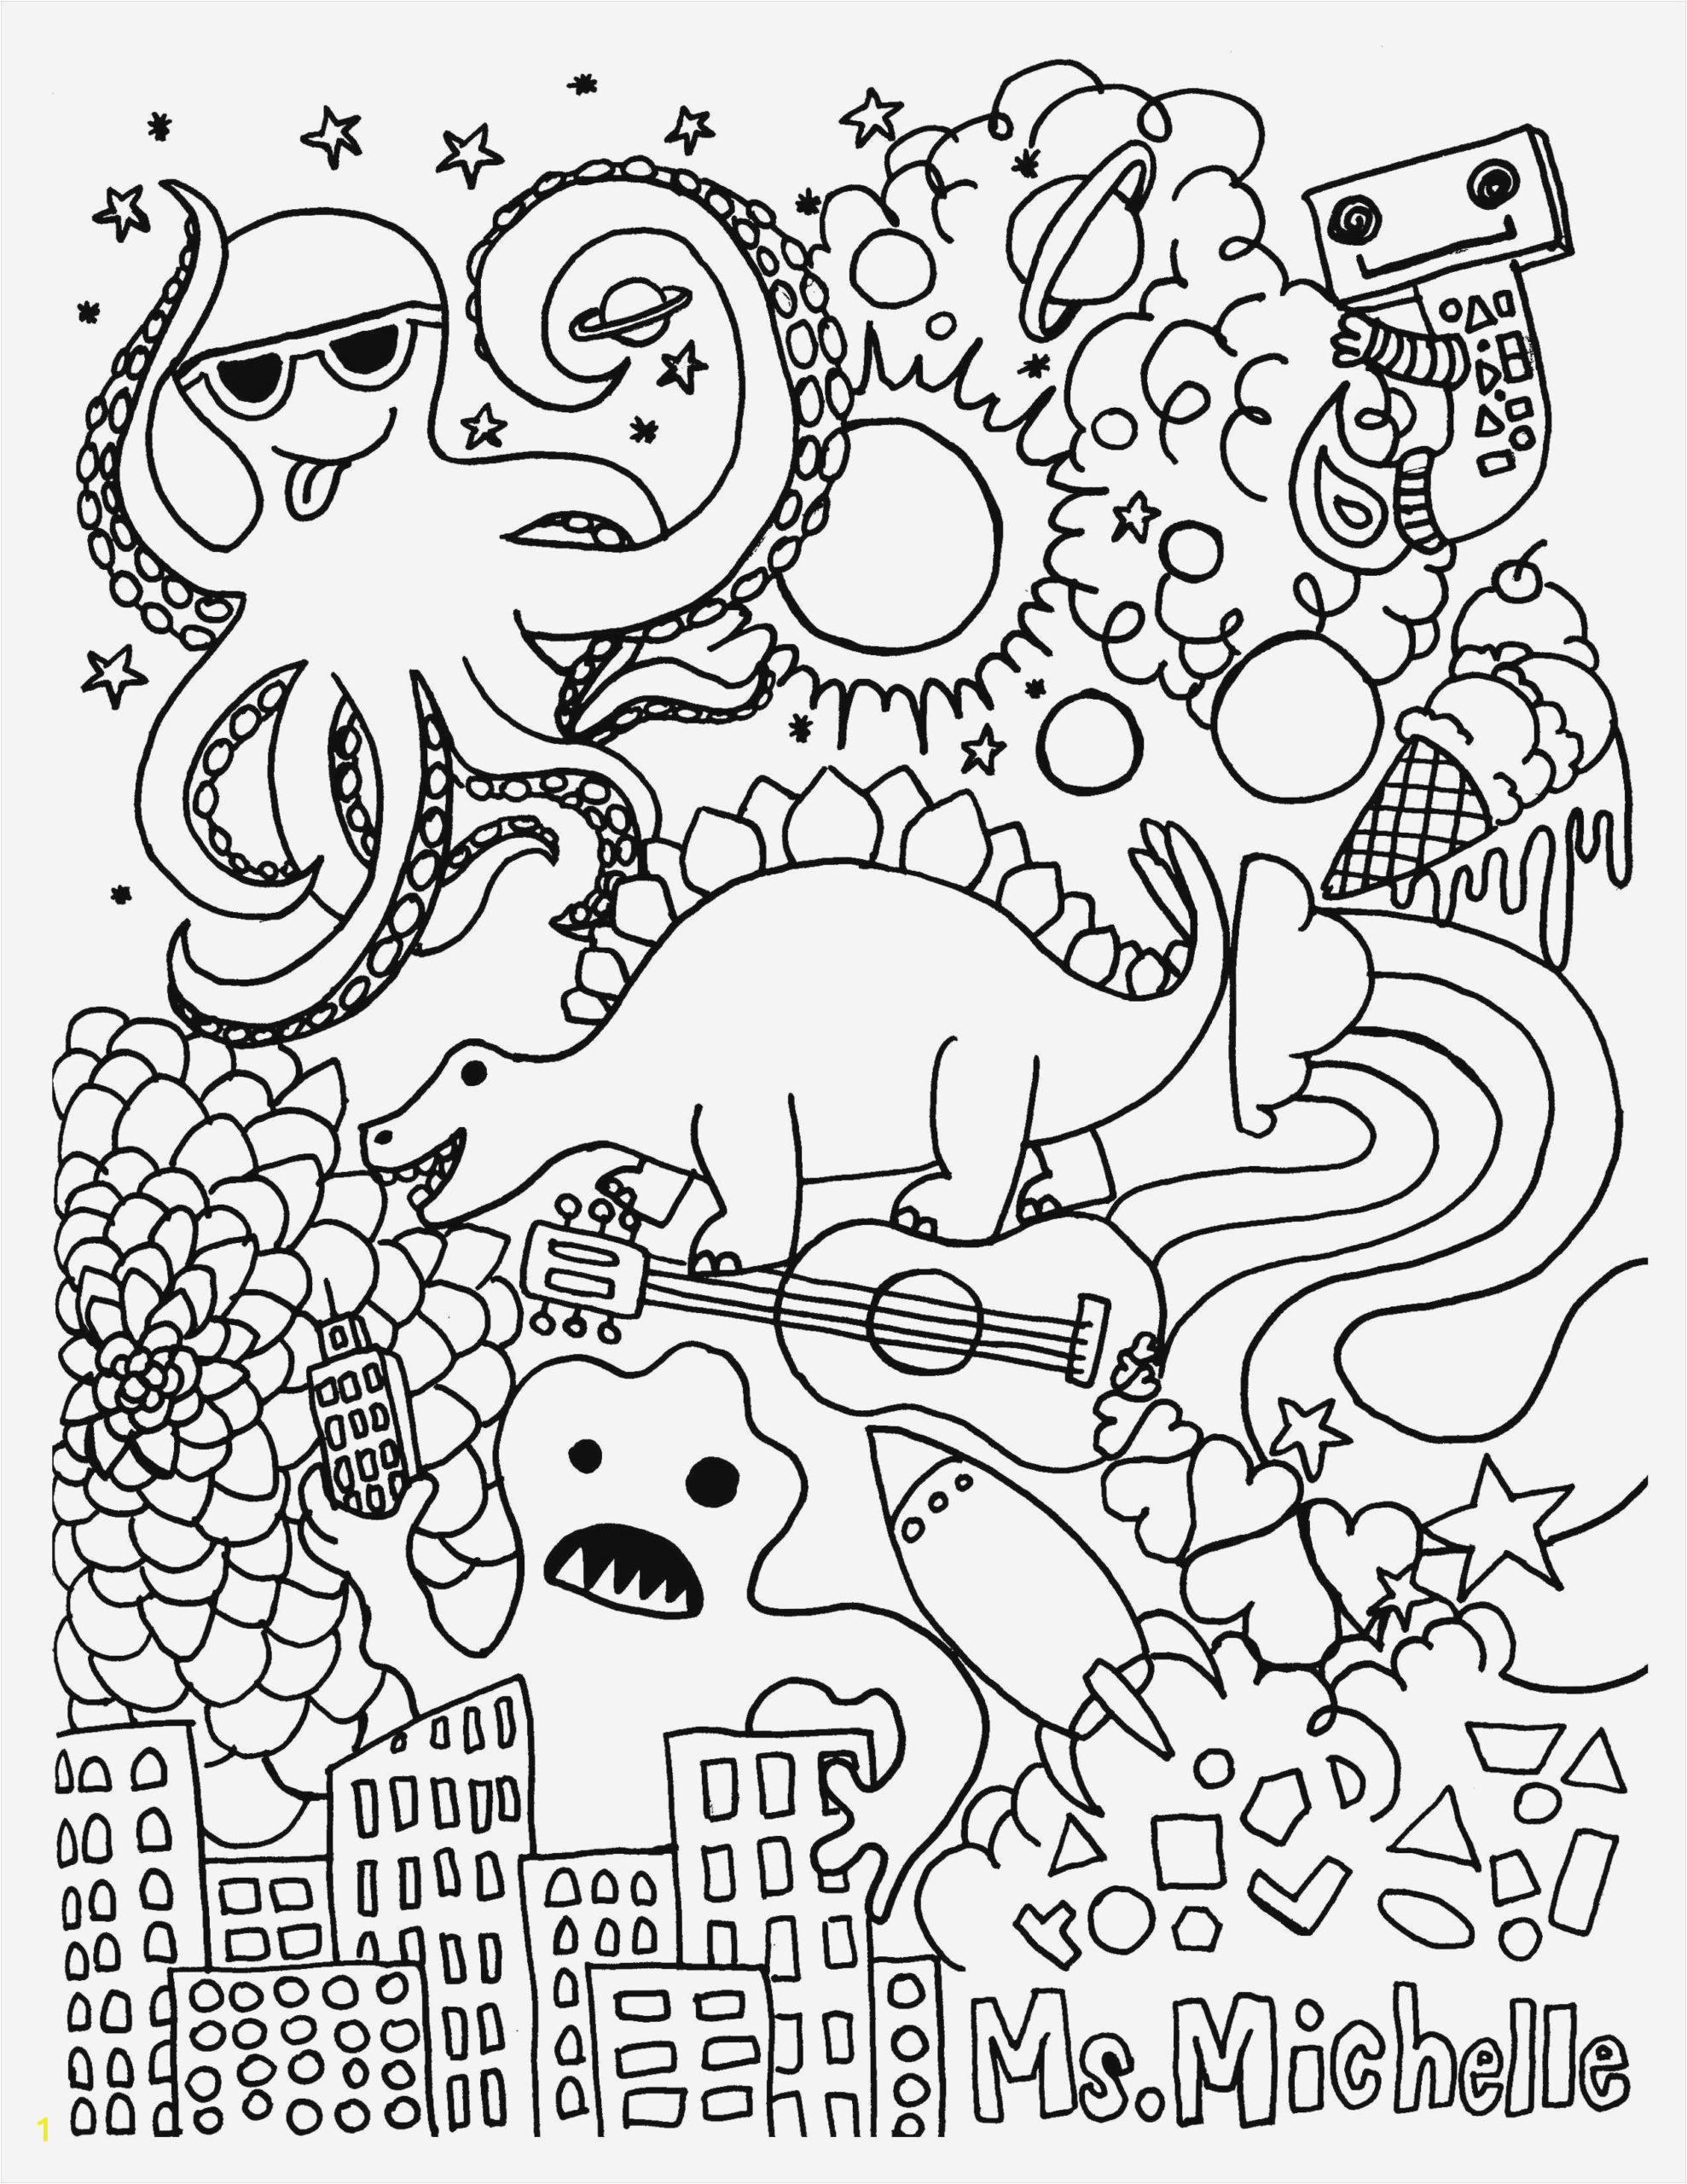 coloring unicorn pagesble awesome of sheets free to print astonishing unicorns colouring printable pictures color colour and printables cute sheet by scaled